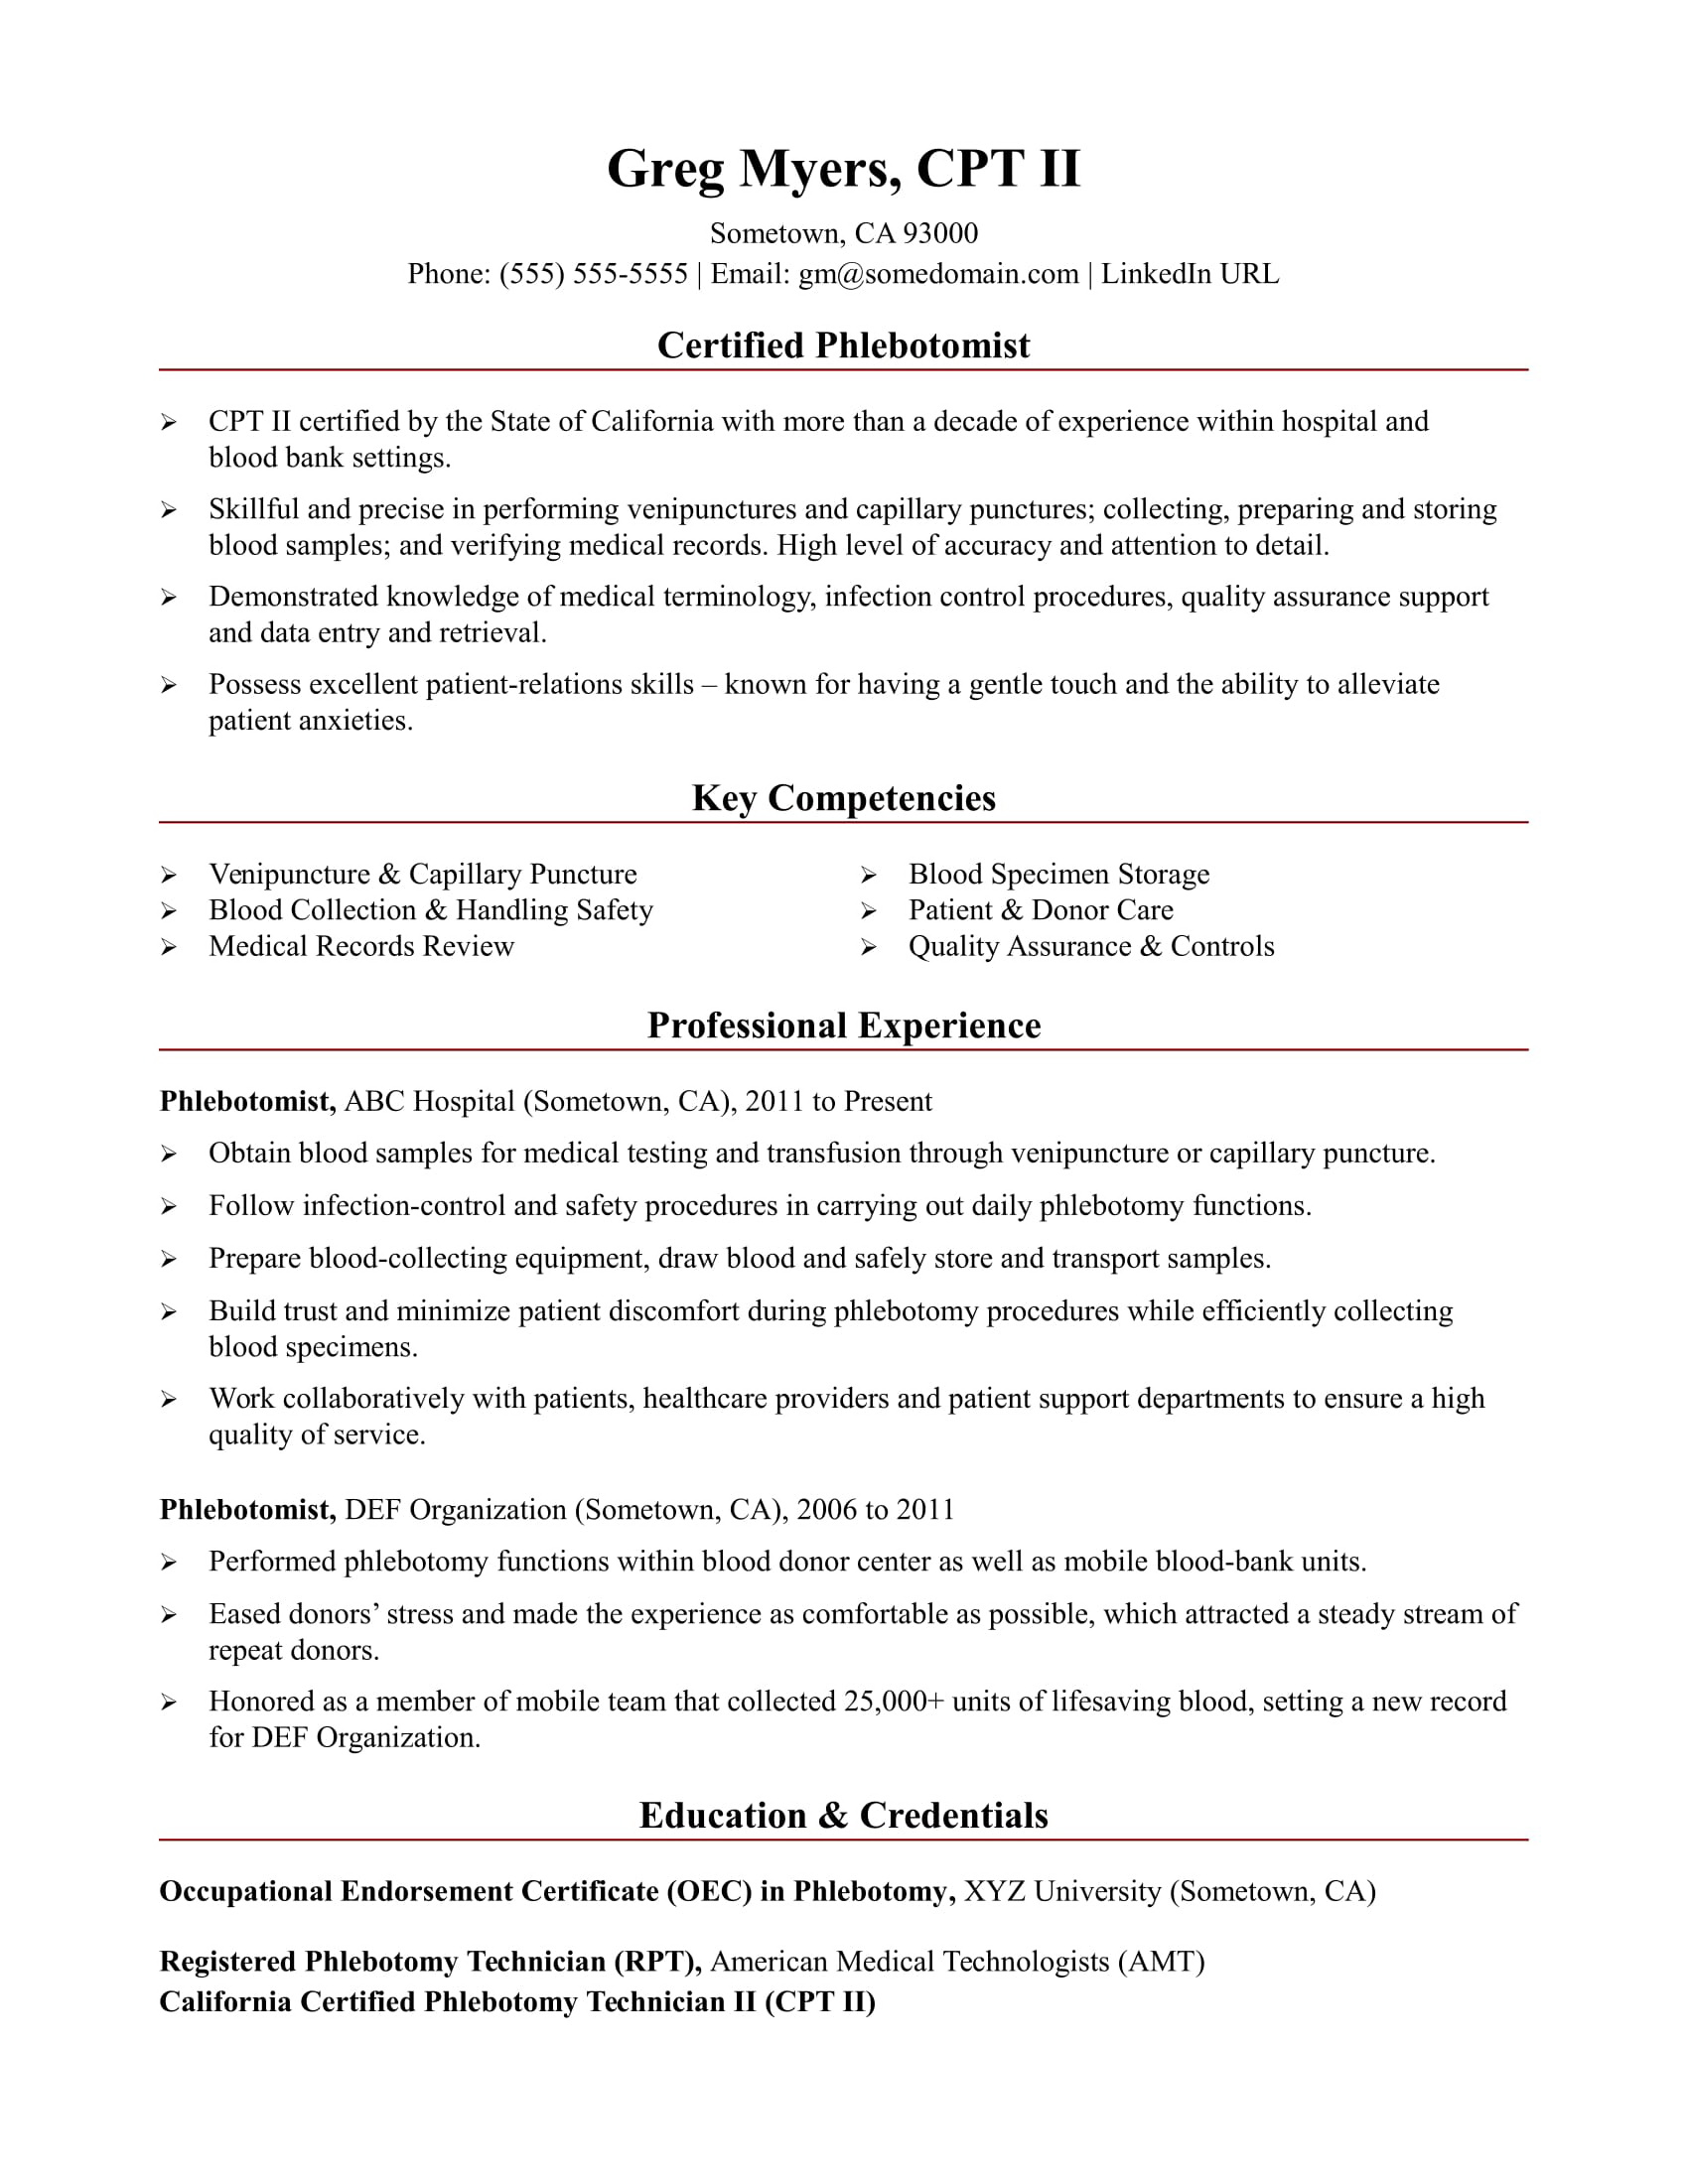 sample resume for medical assistant phlebotomist